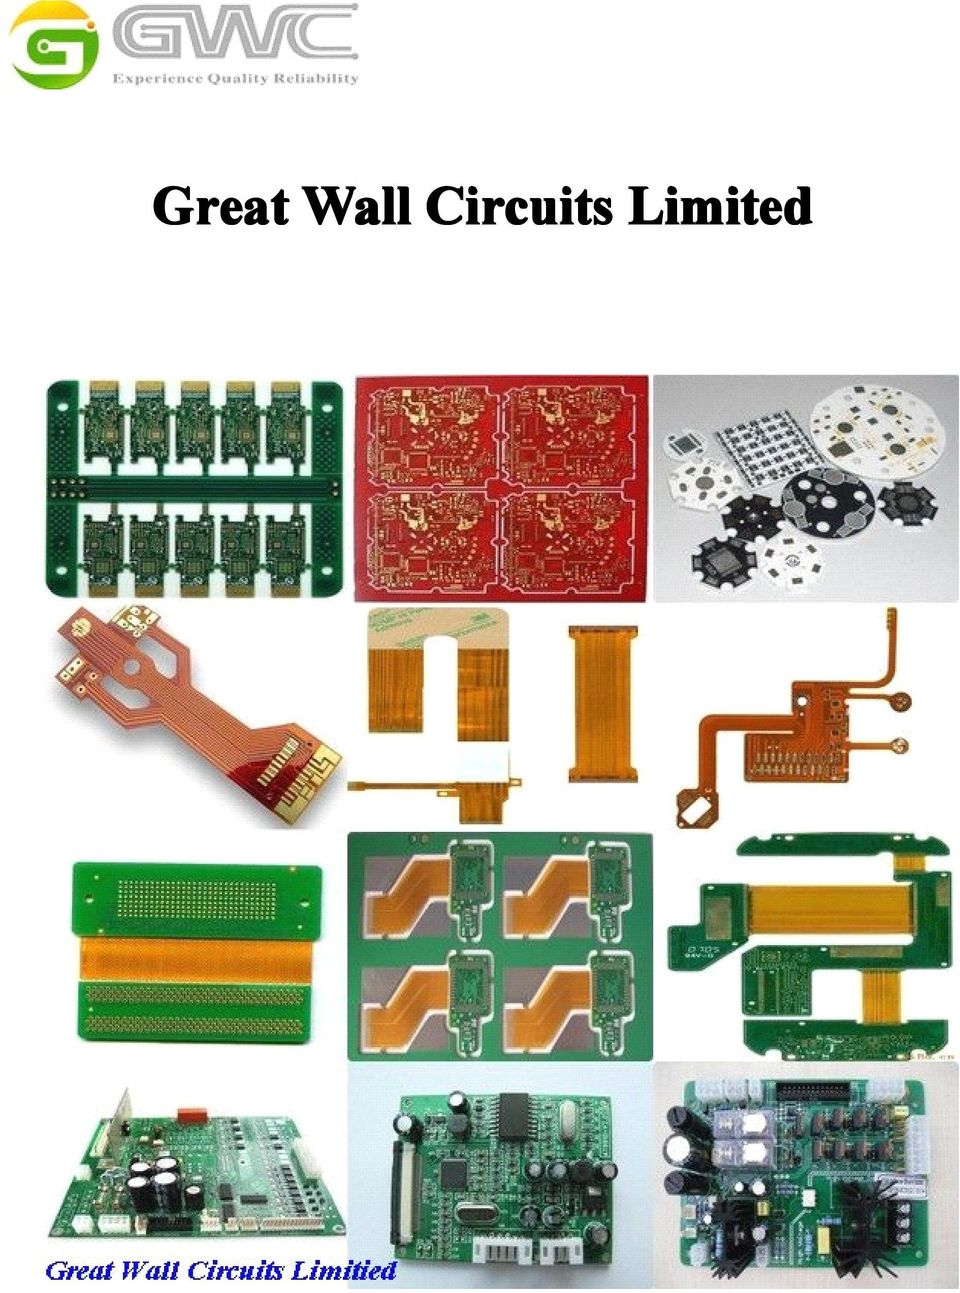 Company Introduction Quality Policy High Efficiency Image Lead Free Pcb Assembly Rohs Printed Circuit Board Assemblies Great Wall Circuits Limited Is A Newly Which Founded In At Beginning We Were Only Focus On Manufacturing Boards